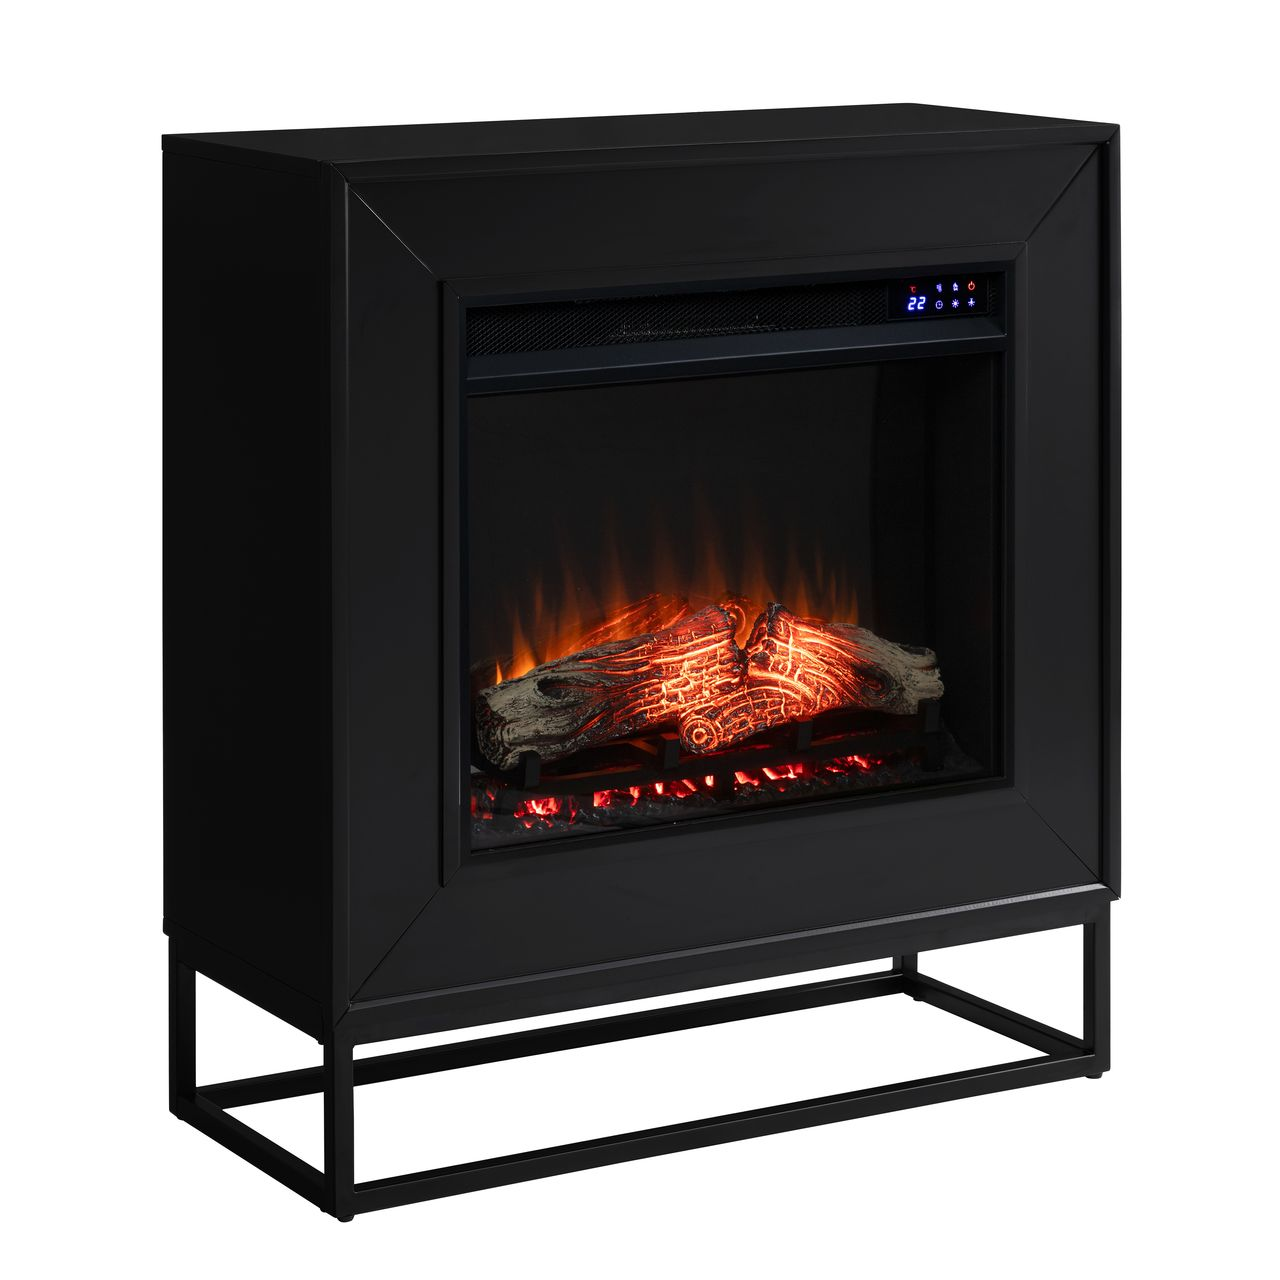 Holly & Martin Frescan FR1063059 Electric Fireplace in Black